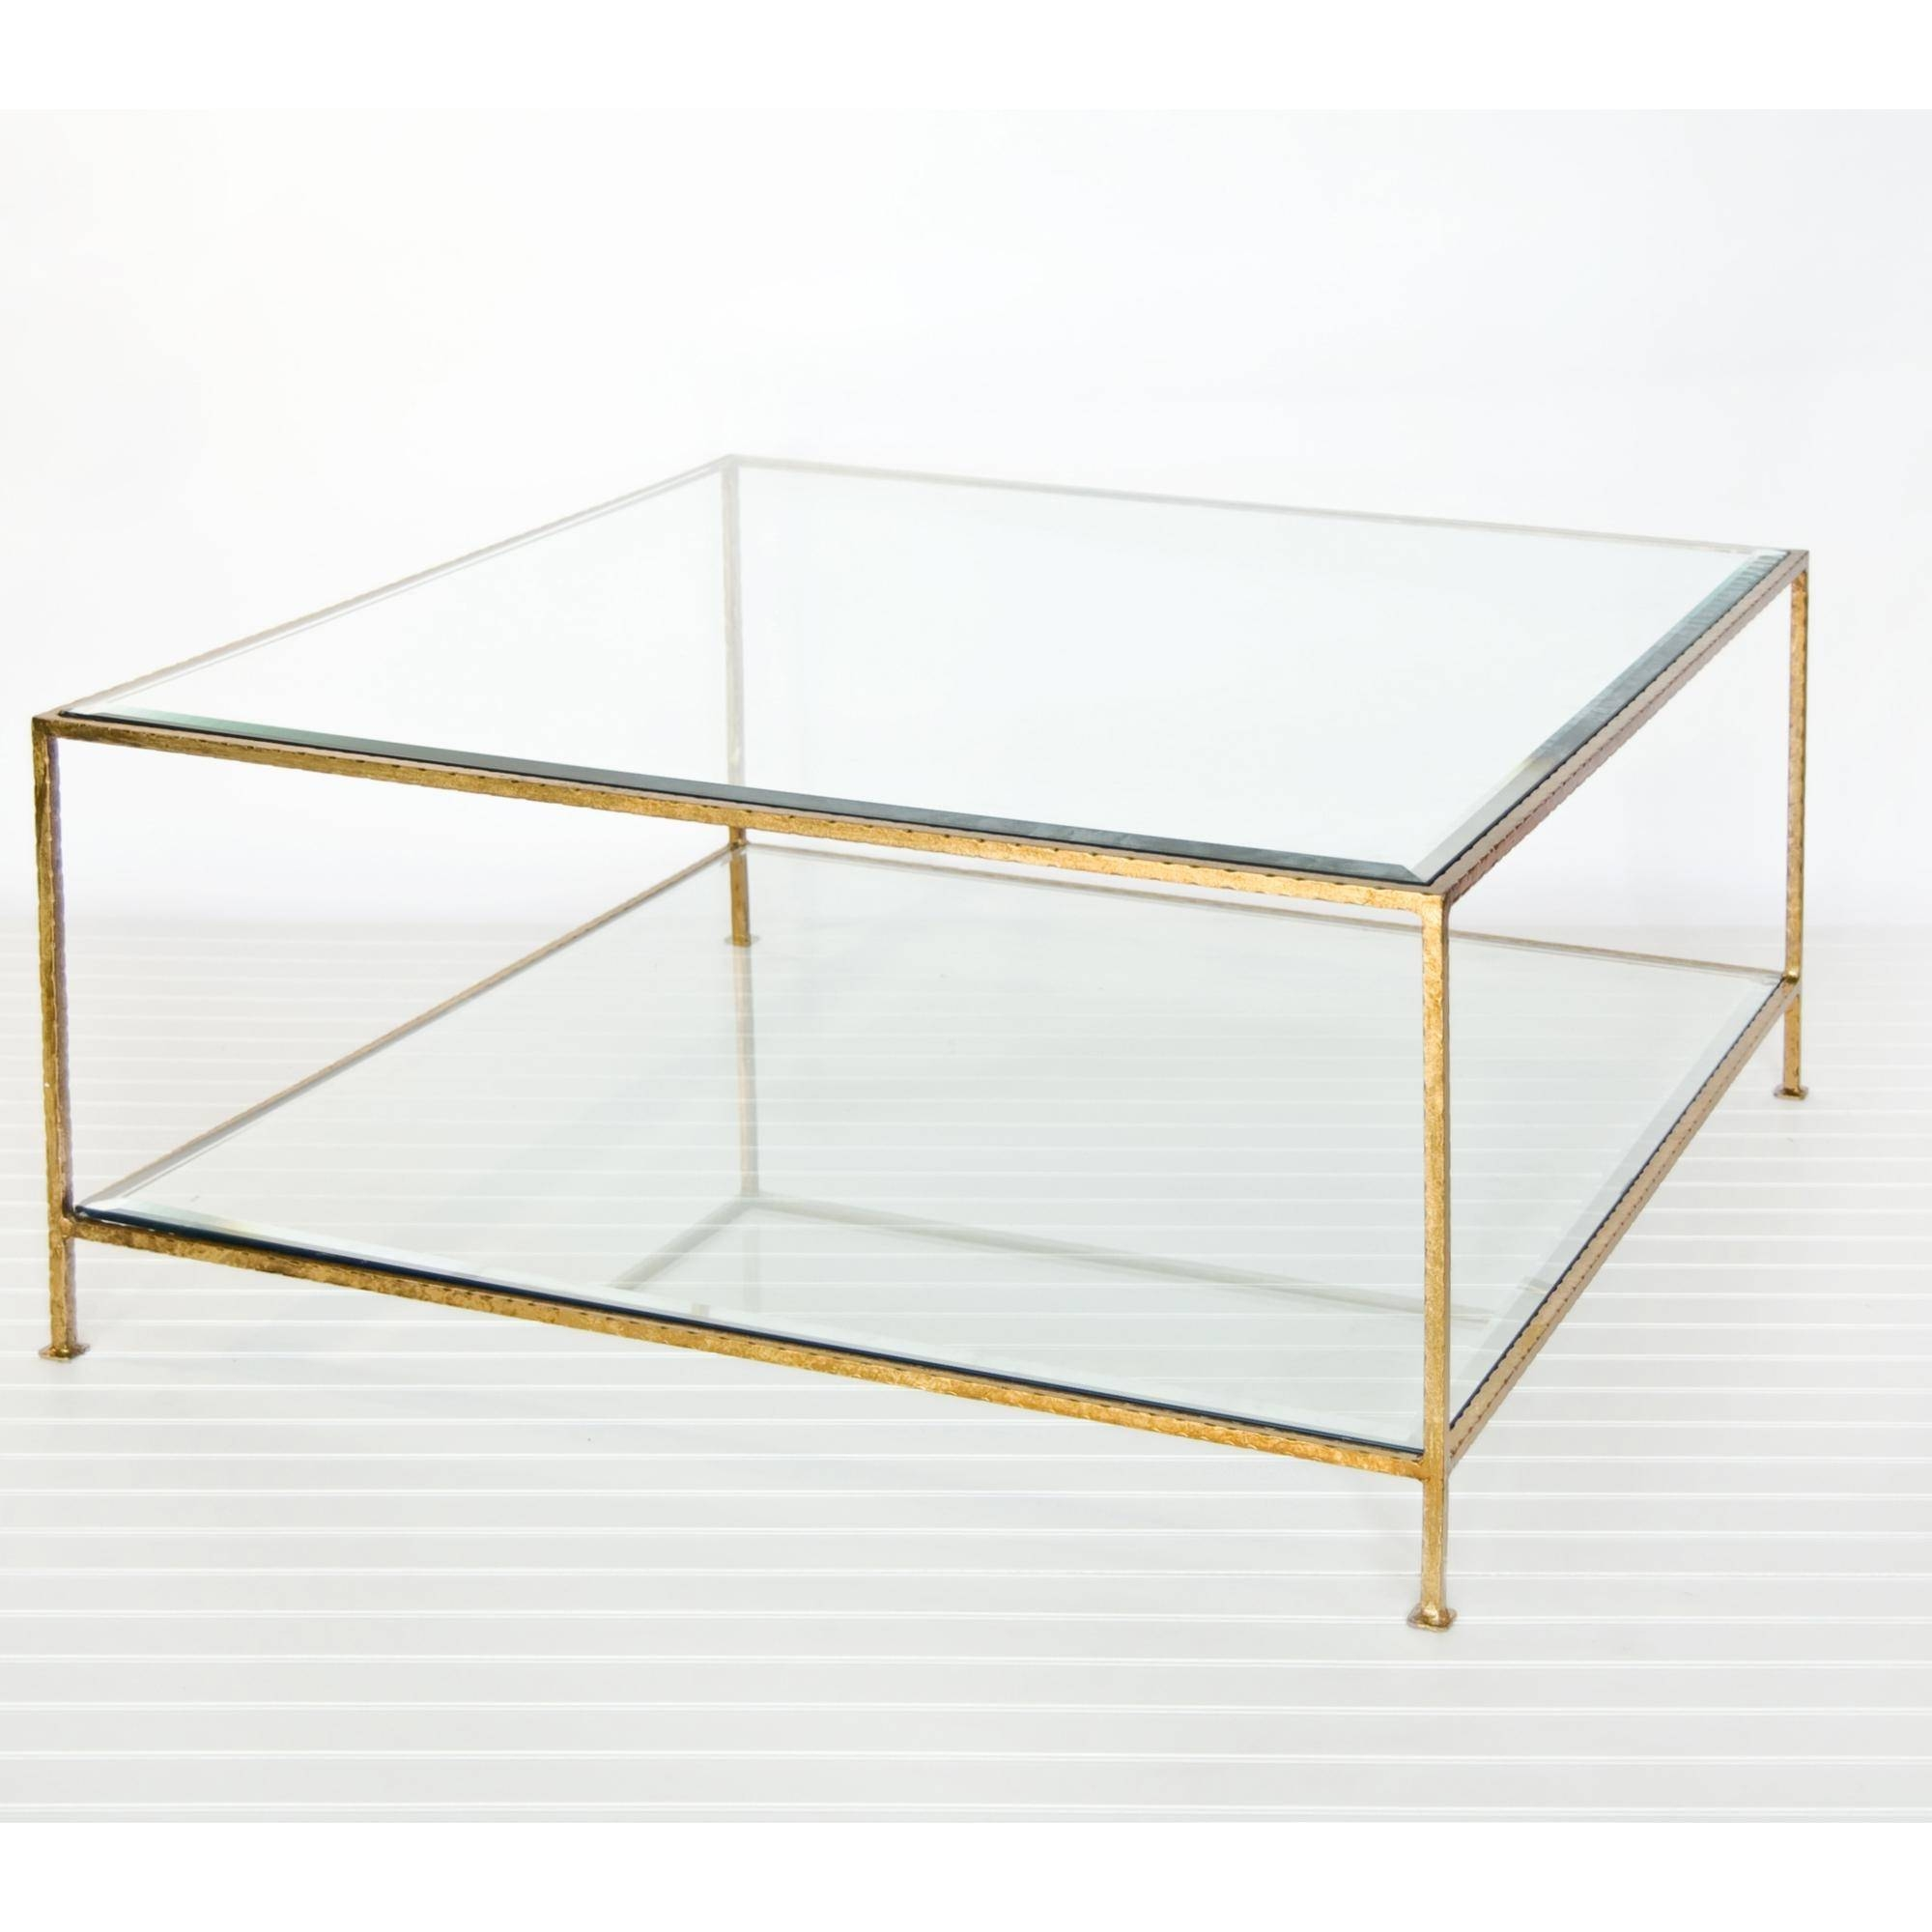 Decorating Ideas Of Brass Coffee Table – Glass Dining Room Tables in Glass Coffee Tables With Shelf (Image 12 of 30)